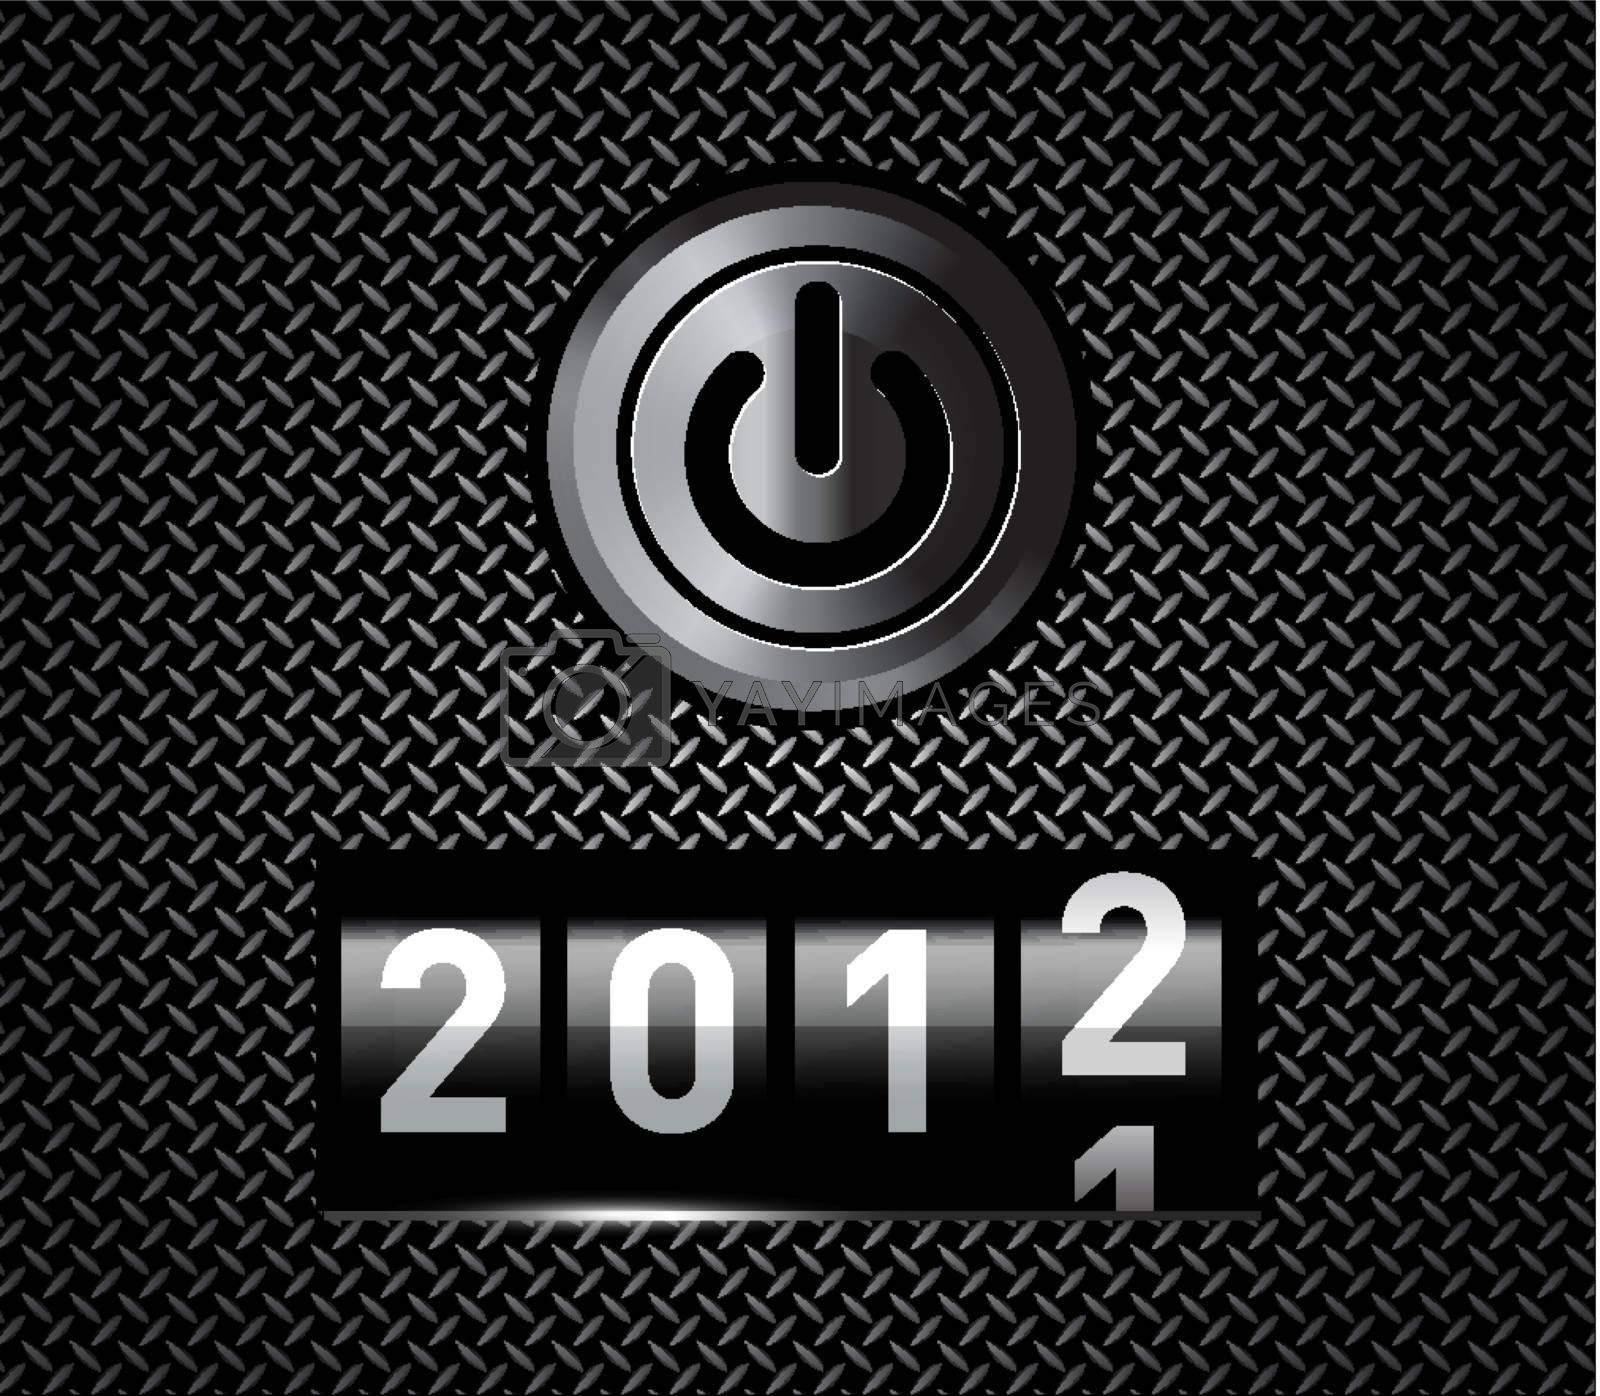 New Year counter 2012 on black metal pattern with power button